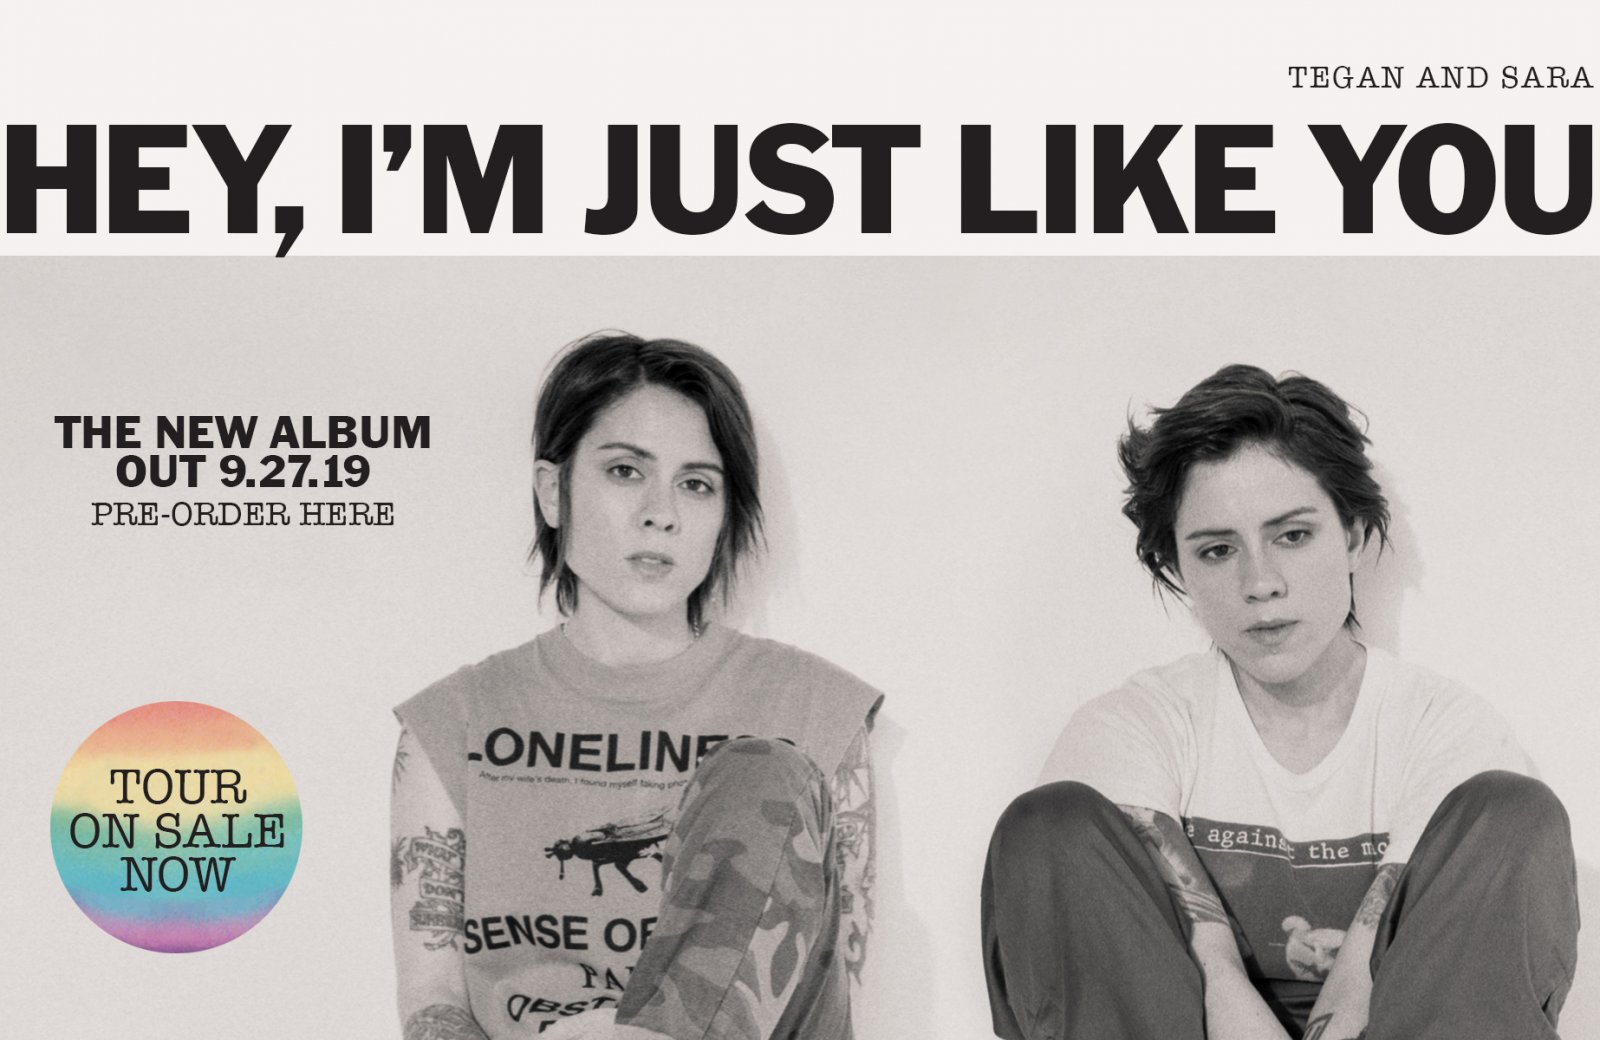 Tegan And Sara Hey I'm Just Like You pre-order